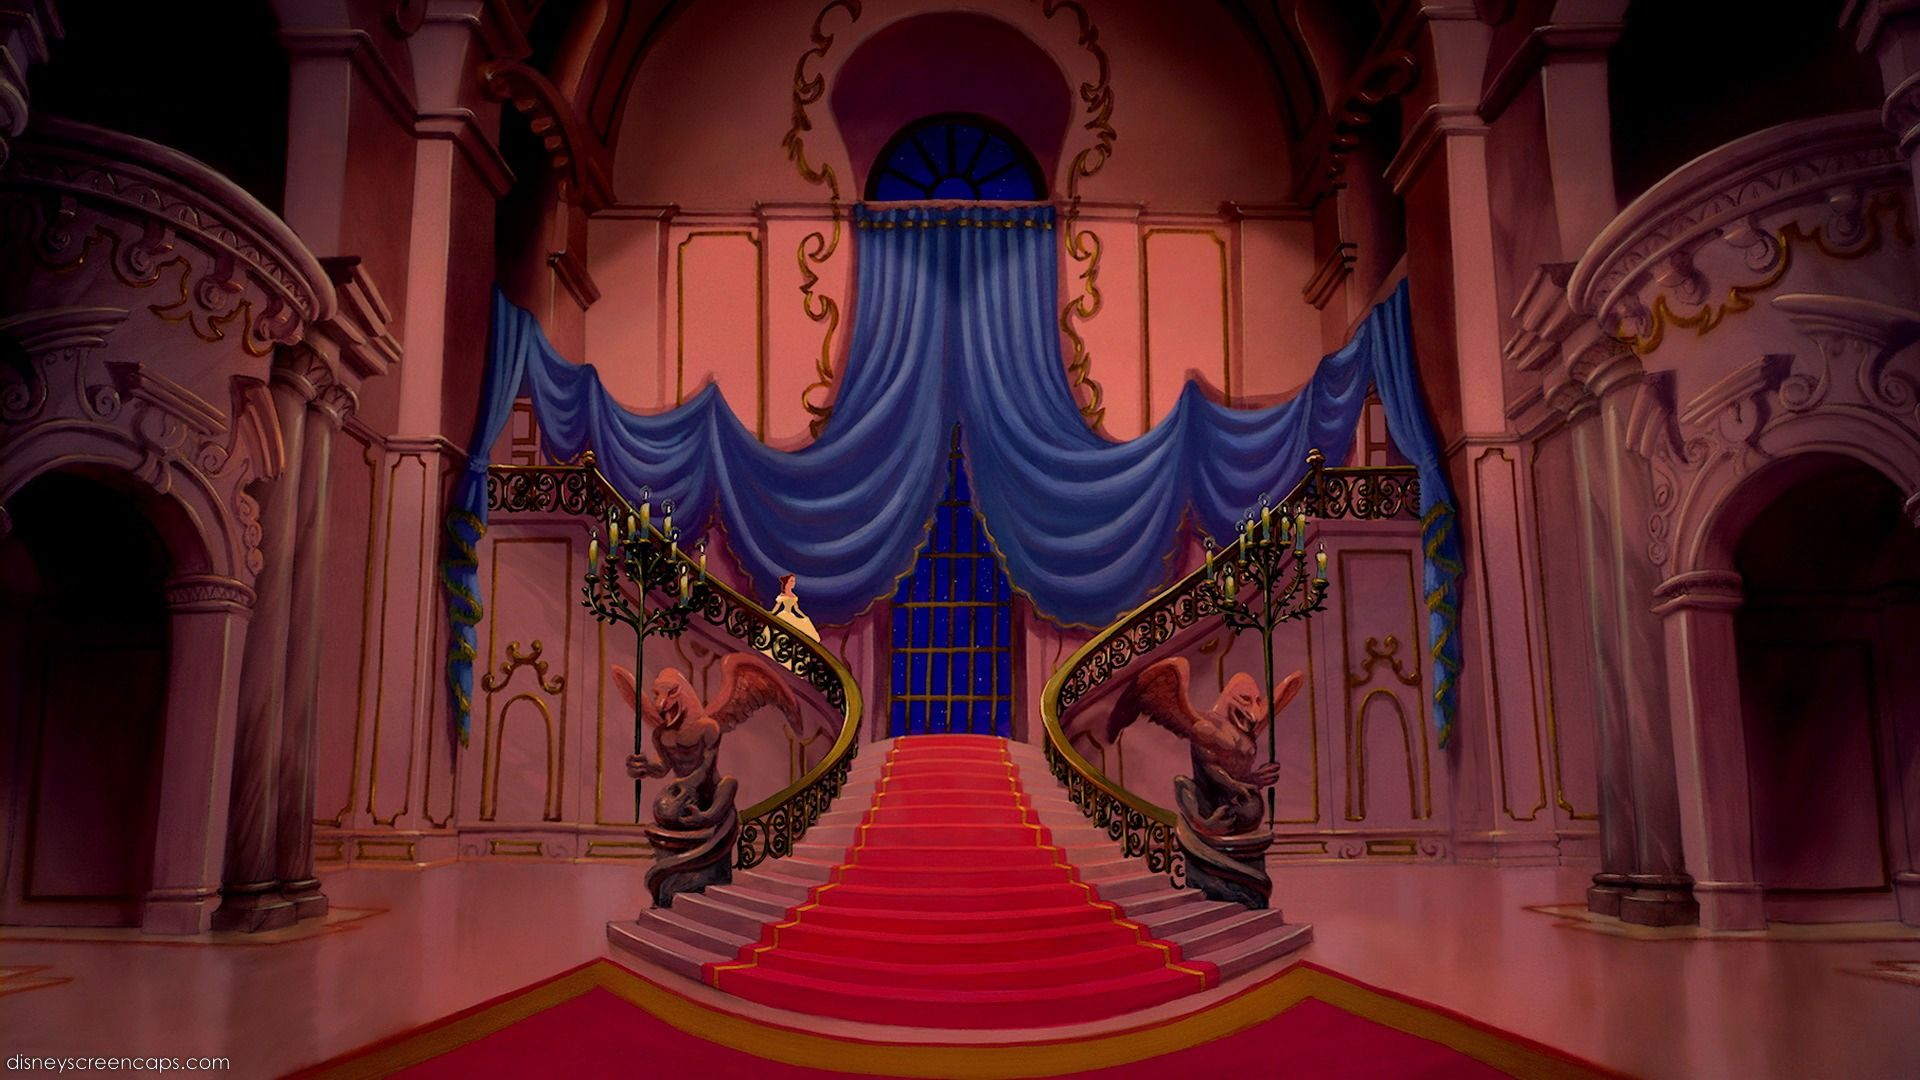 Empty Backdrop from Beauty and the Beast disney crossover